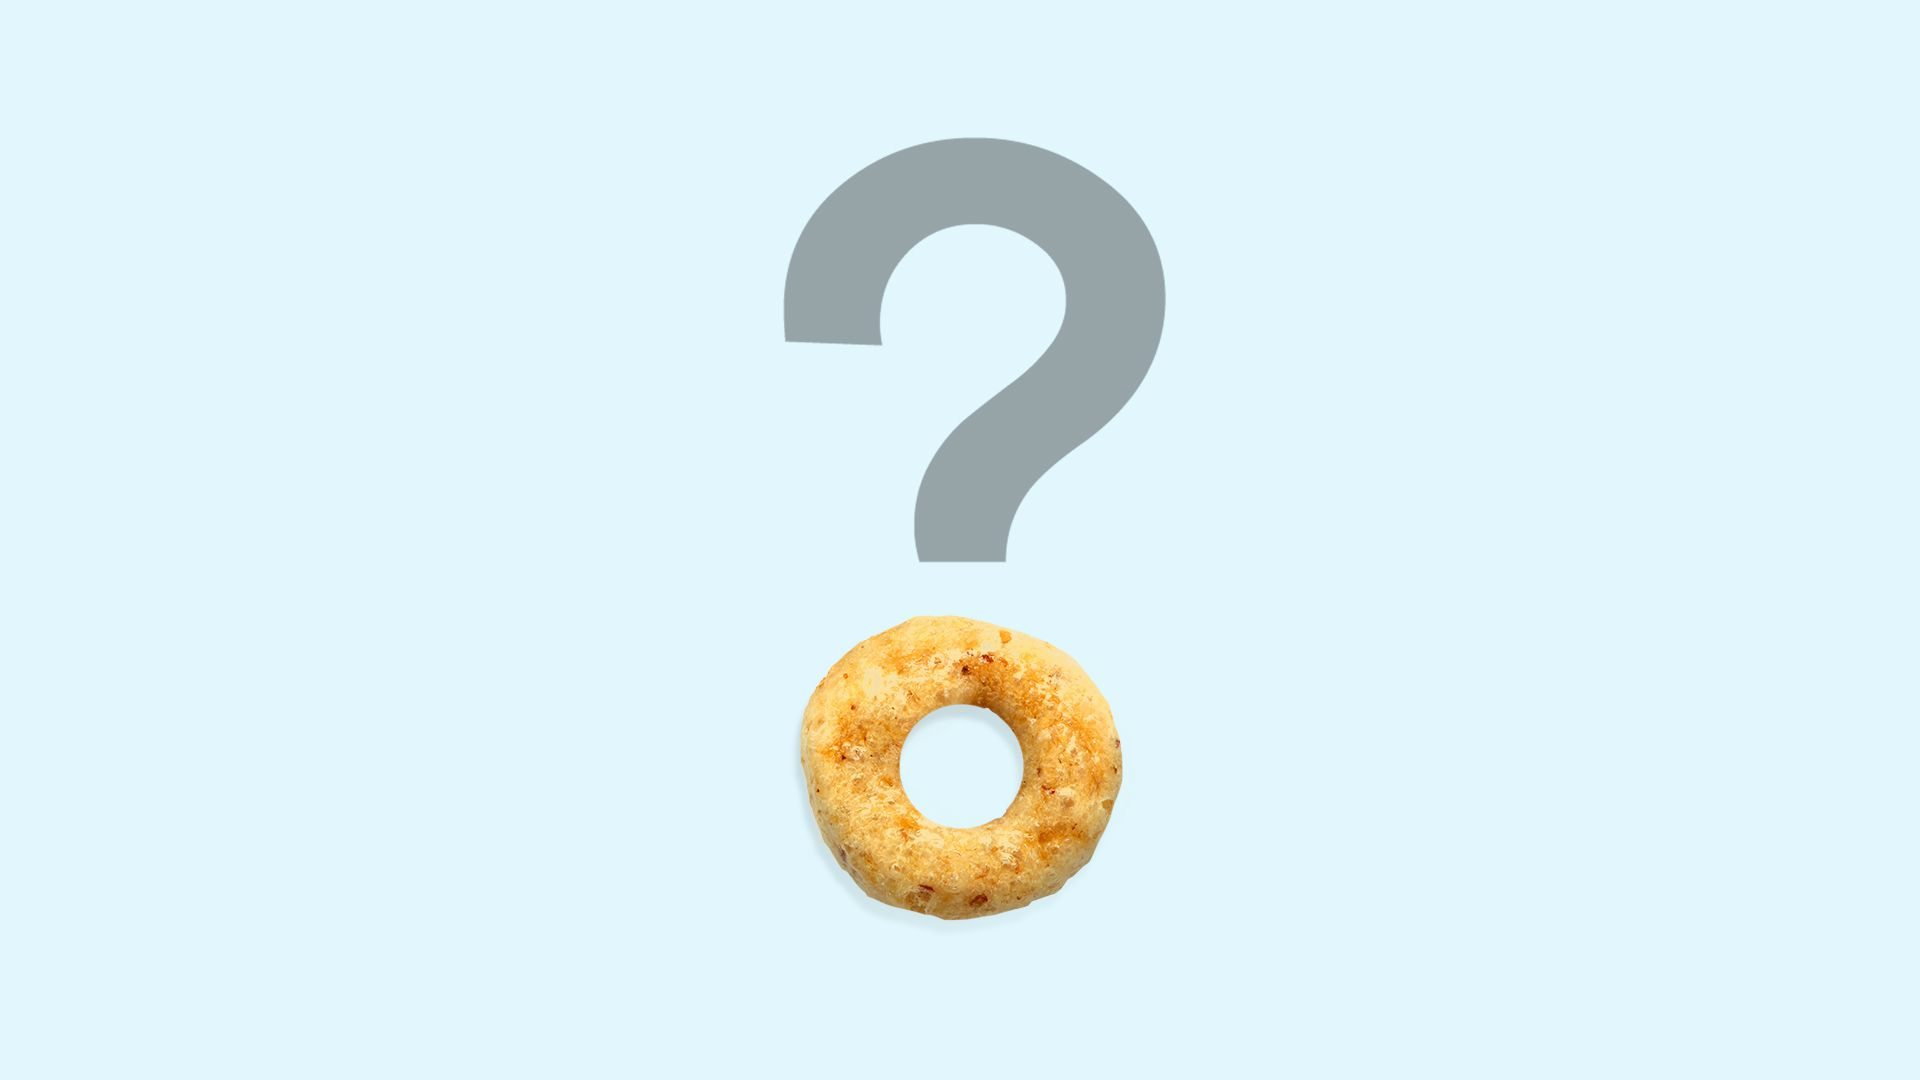 Illustration of a cheerio as a dot to an question mark.